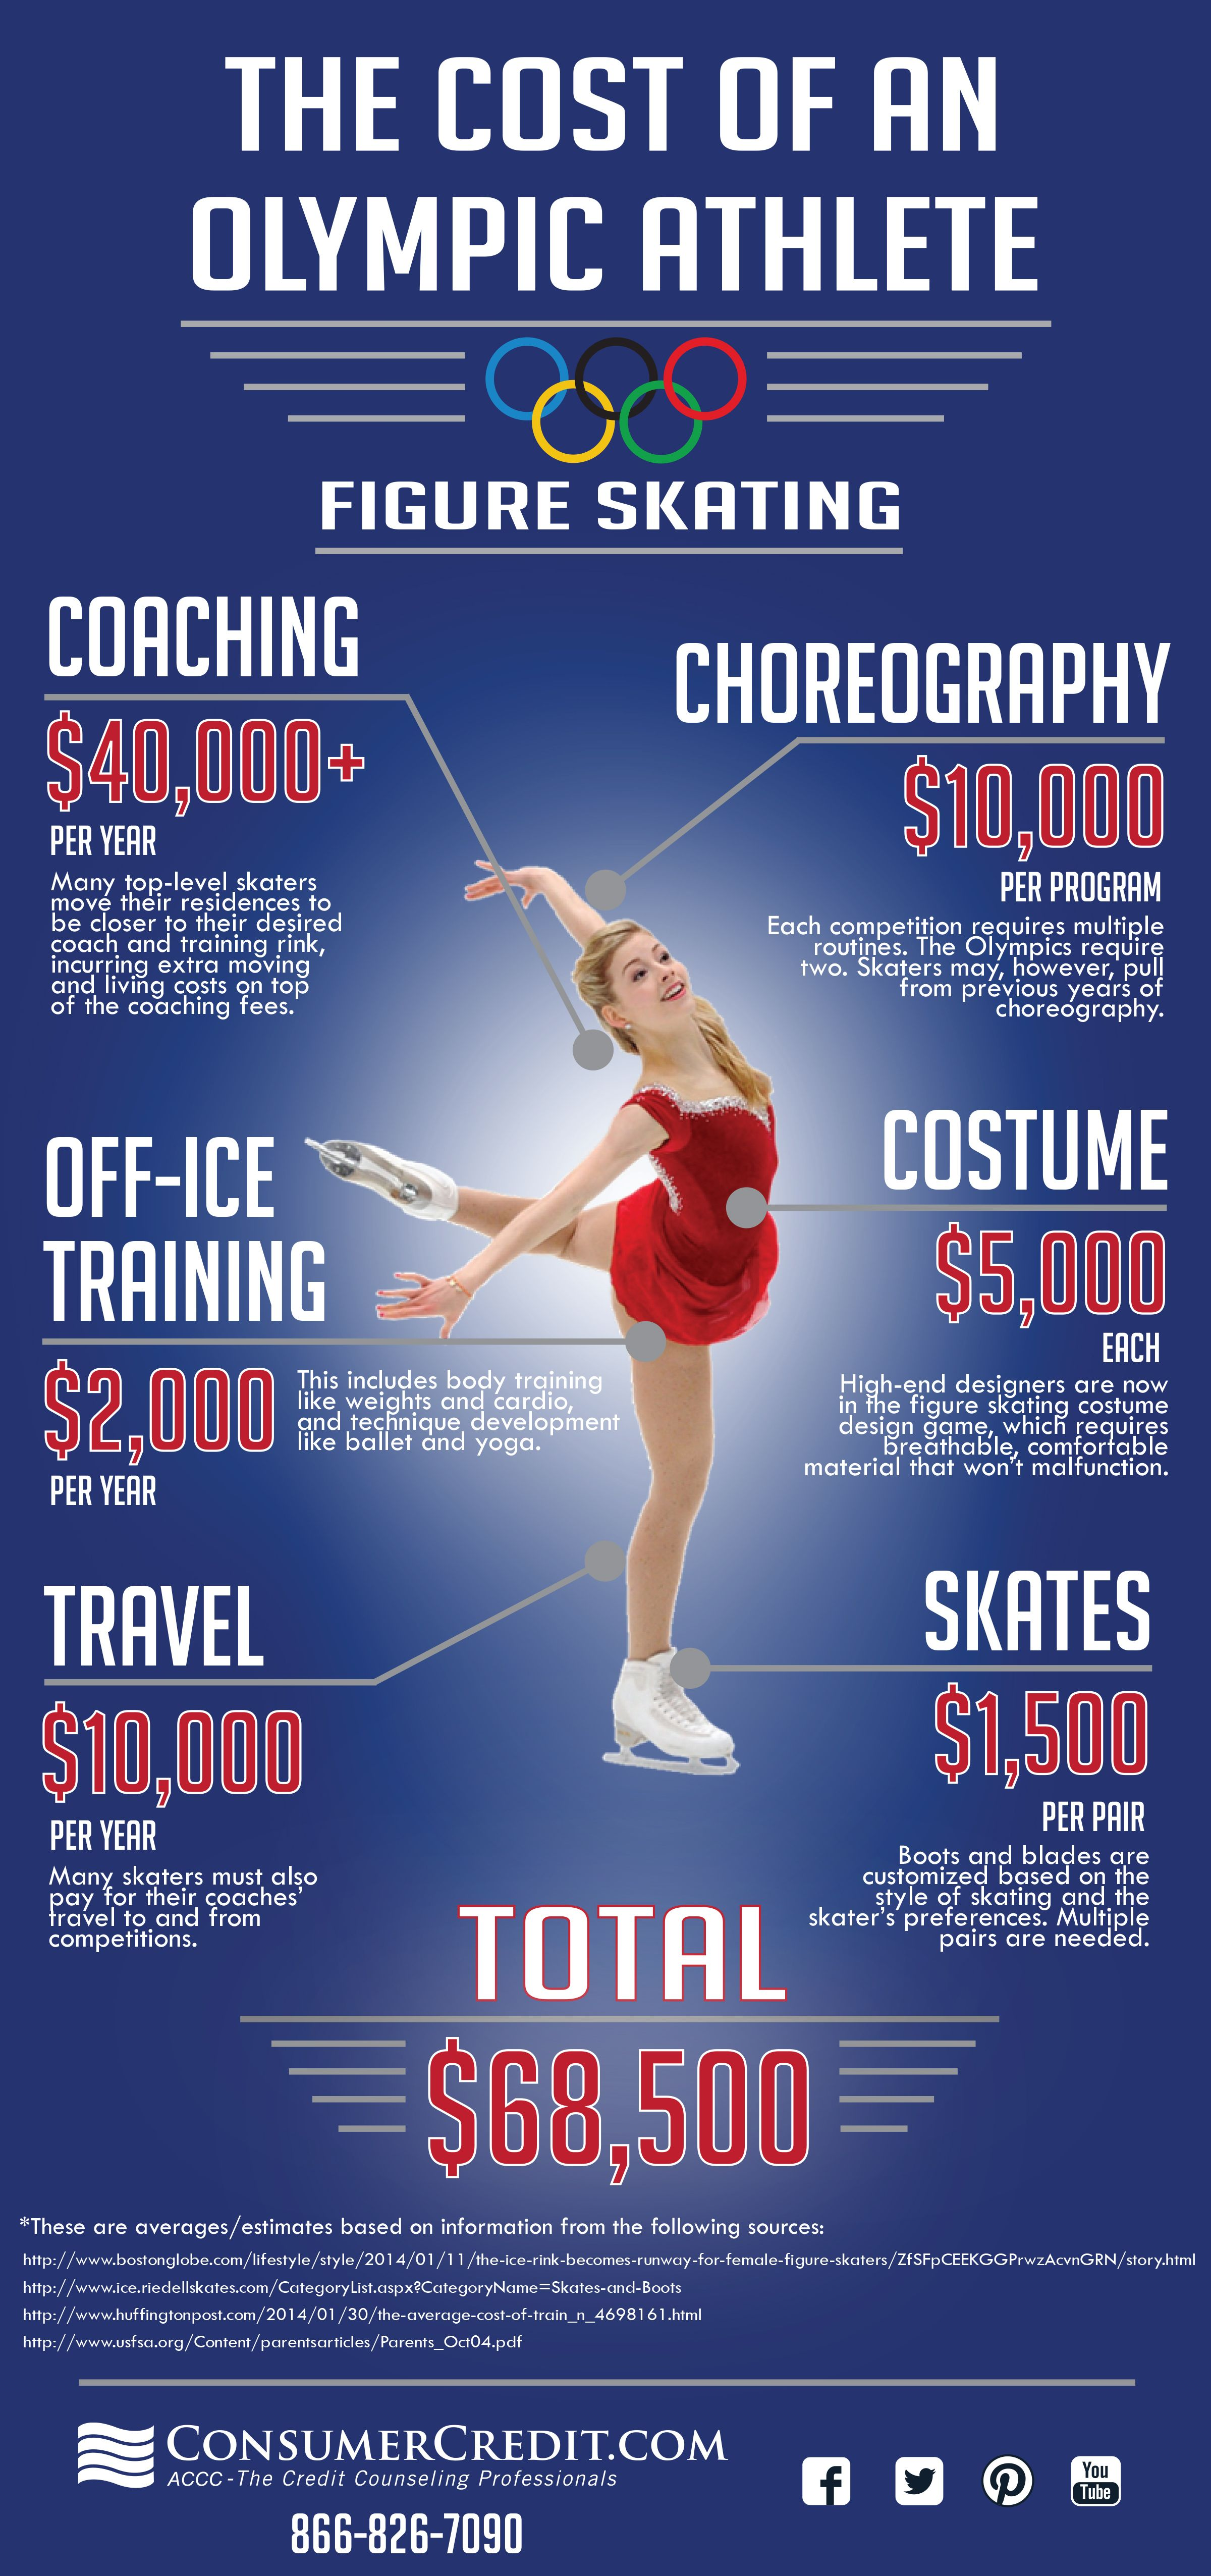 Sochi Olympics The Cost Of Being An Olympic Figure